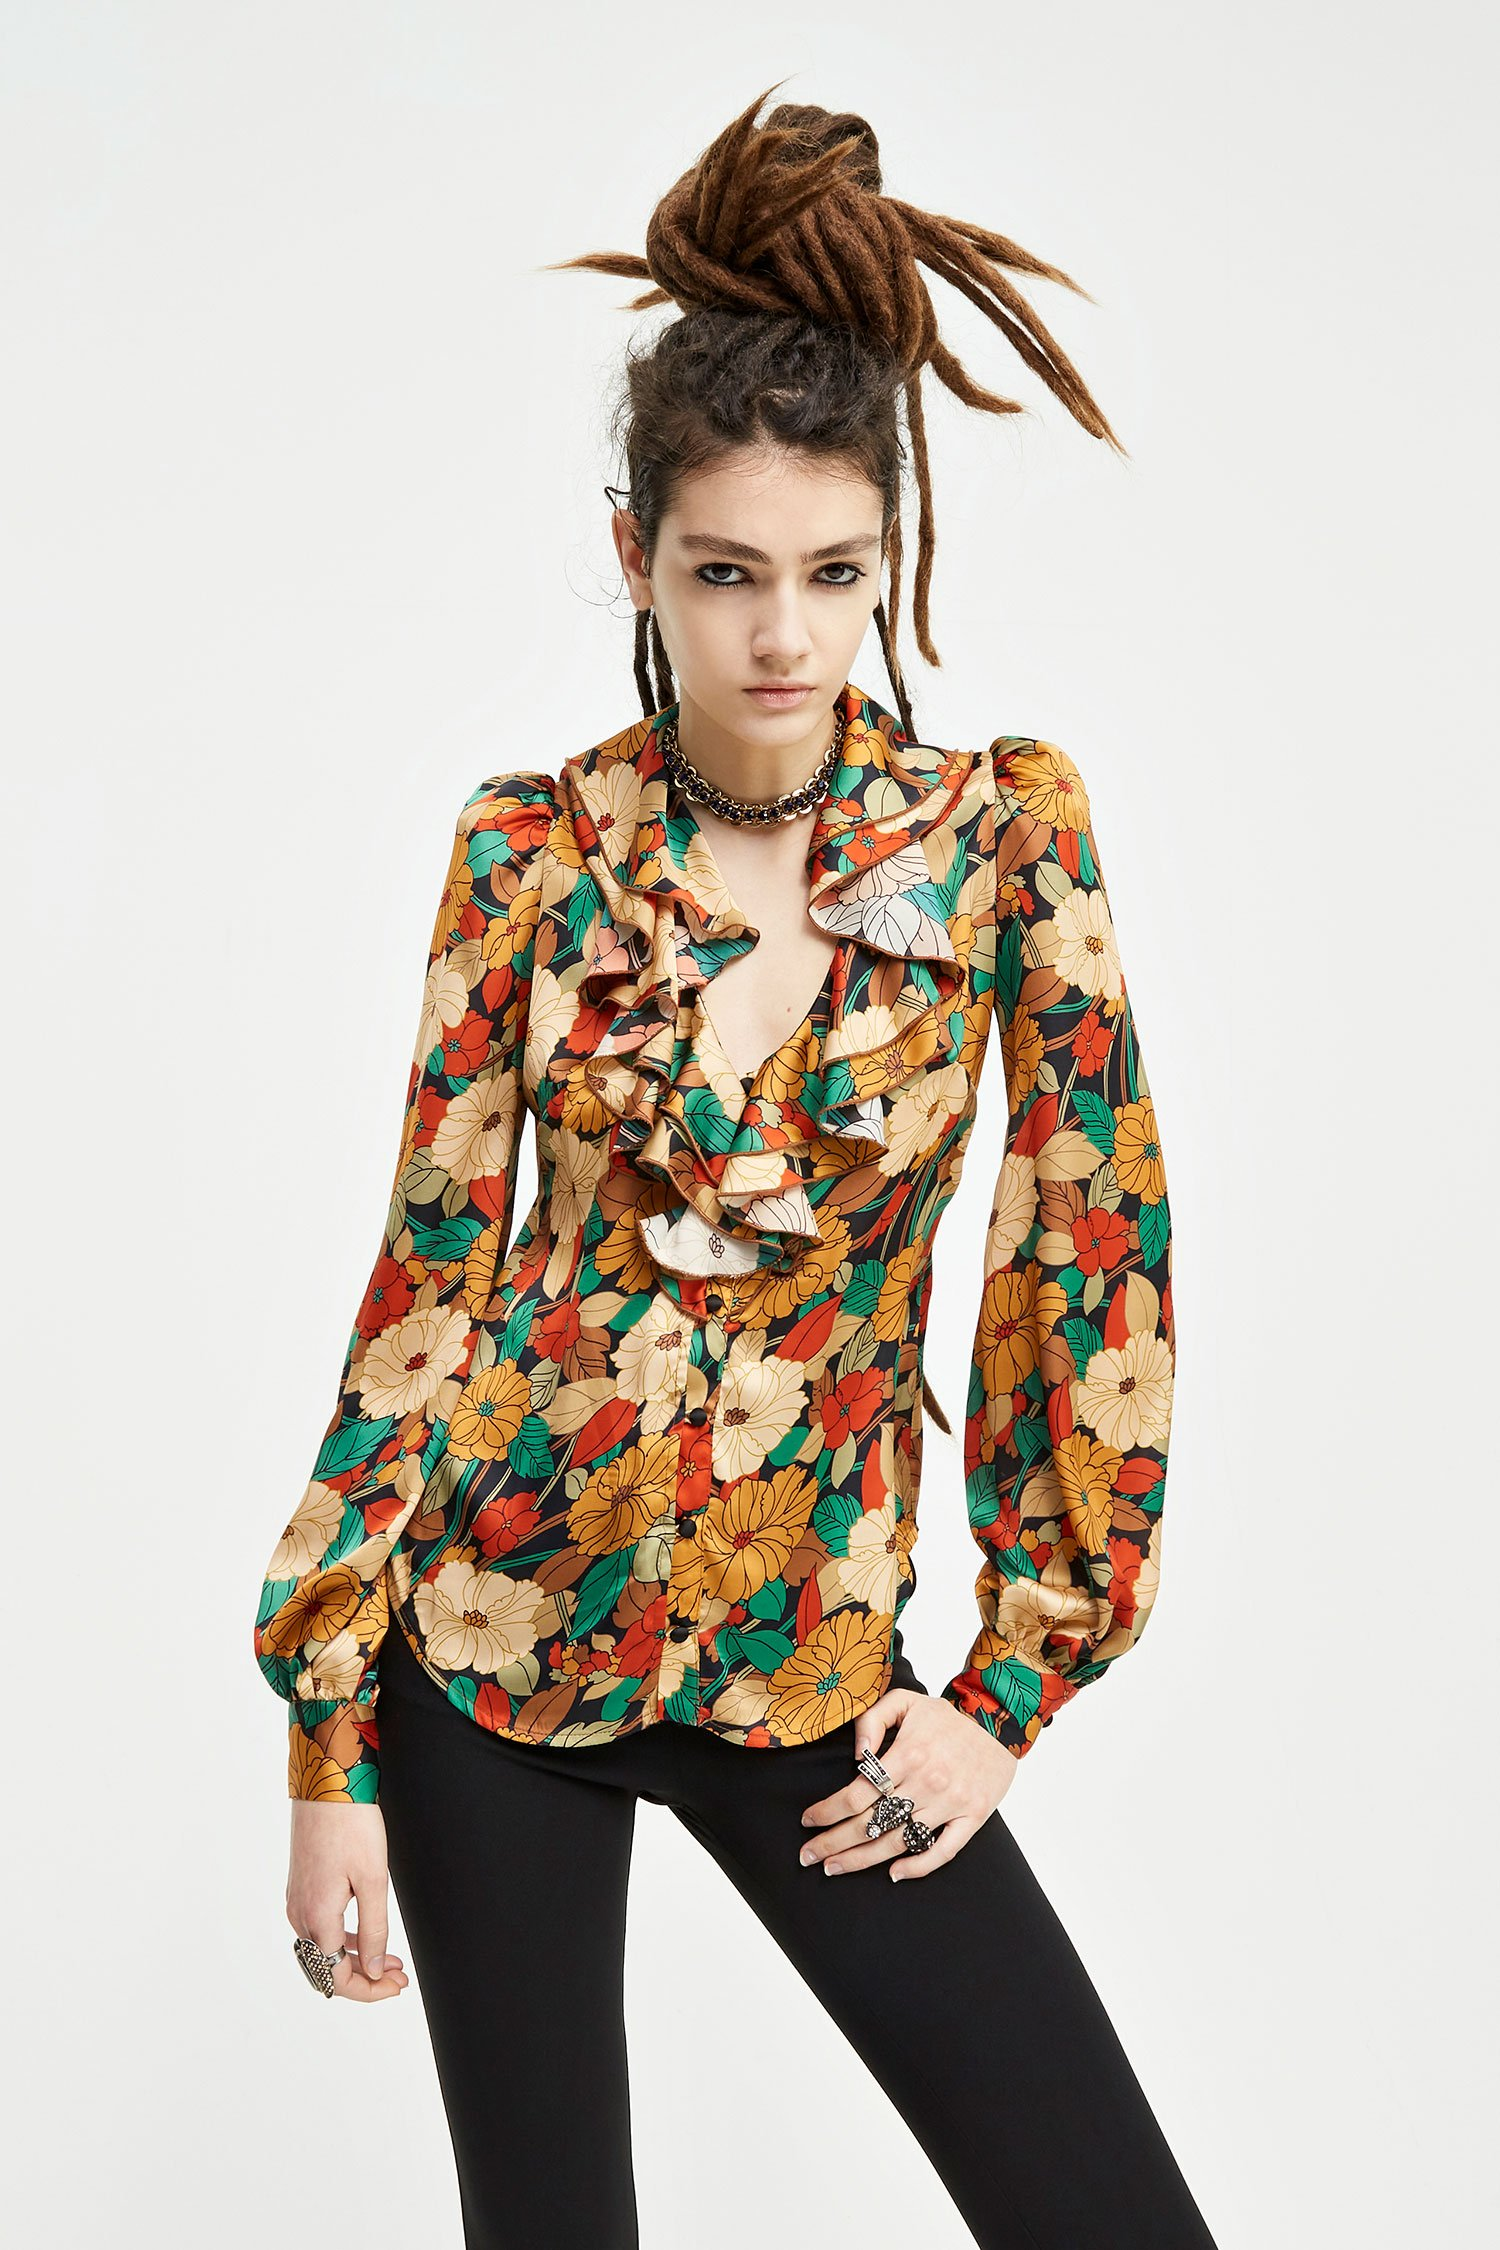 SHOPPING ON LINE ANIYE BY ANIYE CHEMISETTE BLOSSOM  NEW COLLECTION  WOMEN'S FALL/WINTER 2022